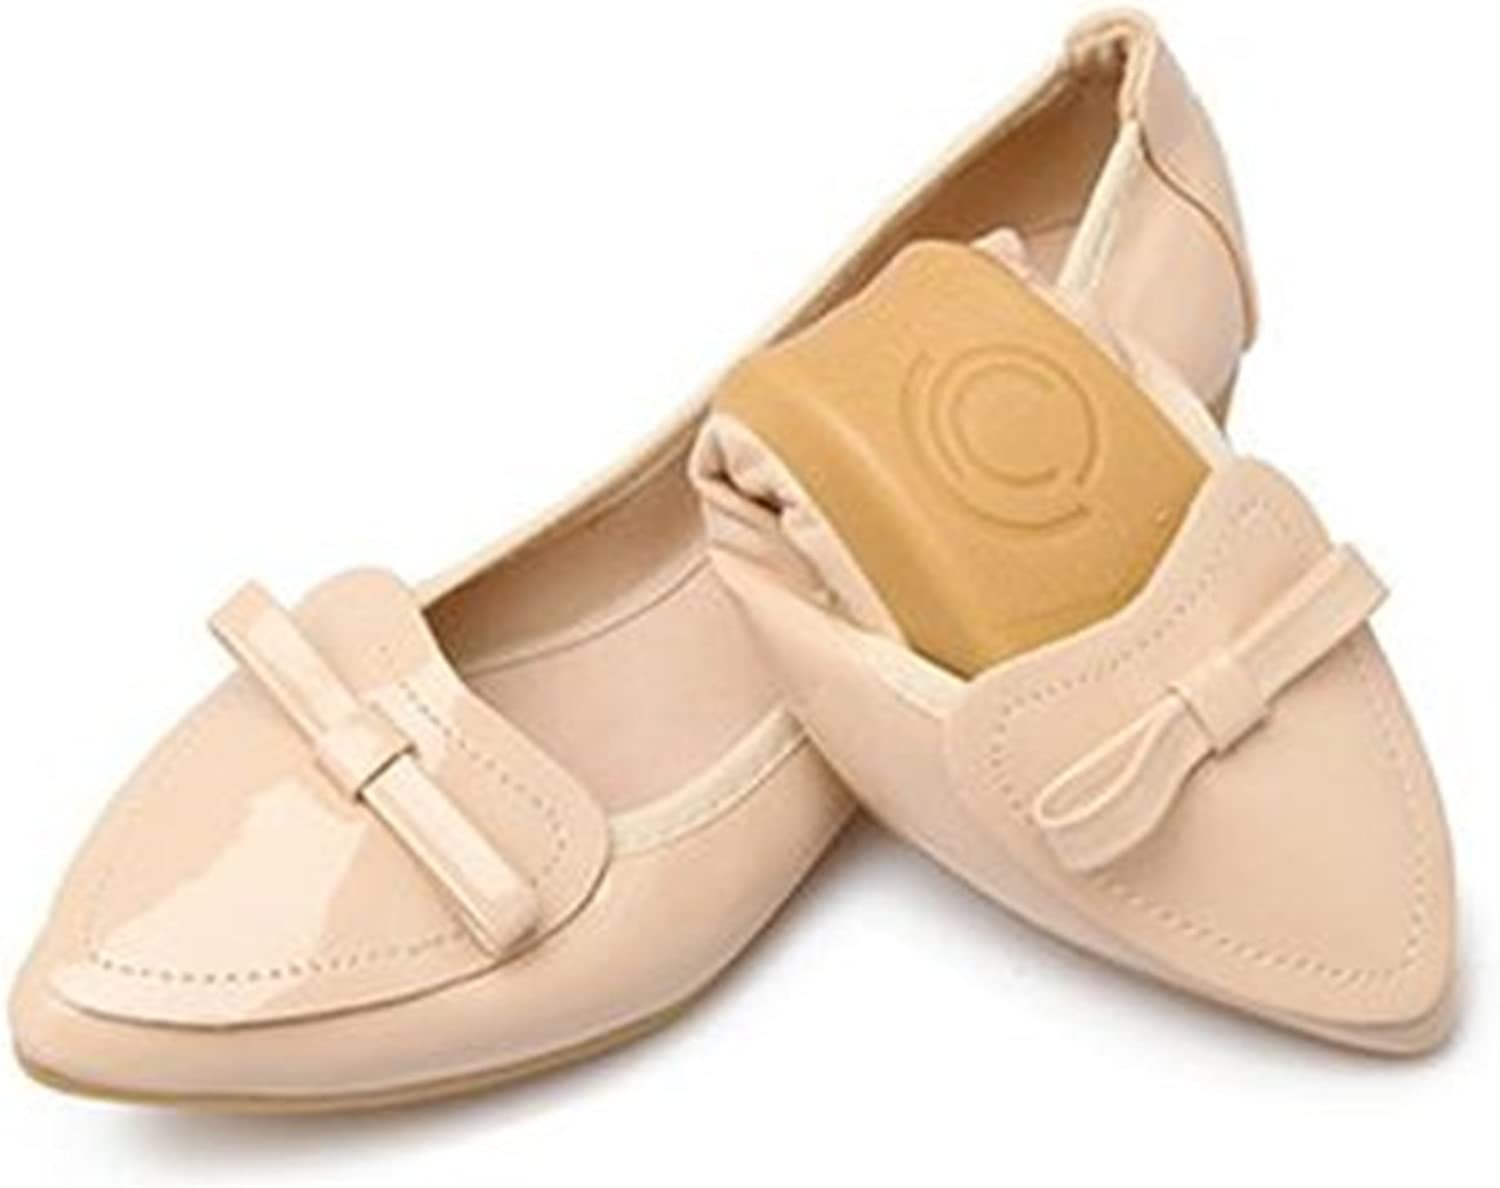 PRETTYHOMEL Foldable Ballet shoes Woman shoes Women Flats Women PU Leather shoes Pretty Boat shoes